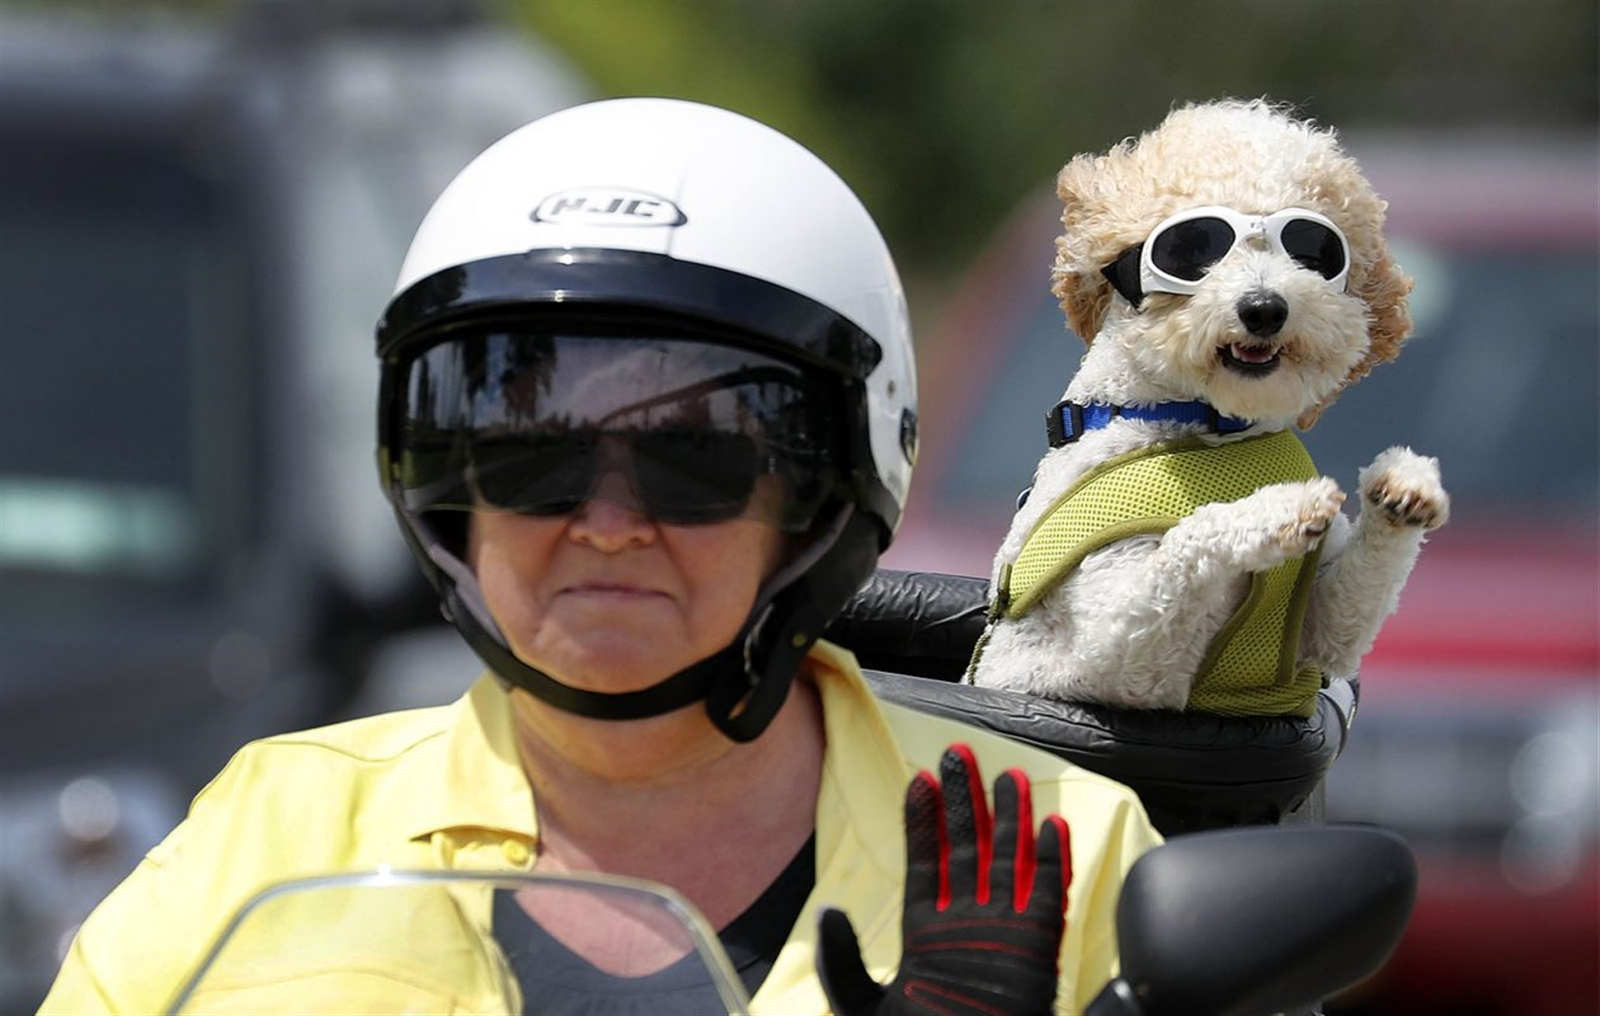 Brad is a 1-year-old Bichon Frise and poodle mix who often stands up and flails his paws from his PoochPod while riding a motor scooter. Pictured here: Donna McGuire and her dog Brad take a ride on their scooter along Fuhrmann Blvd.